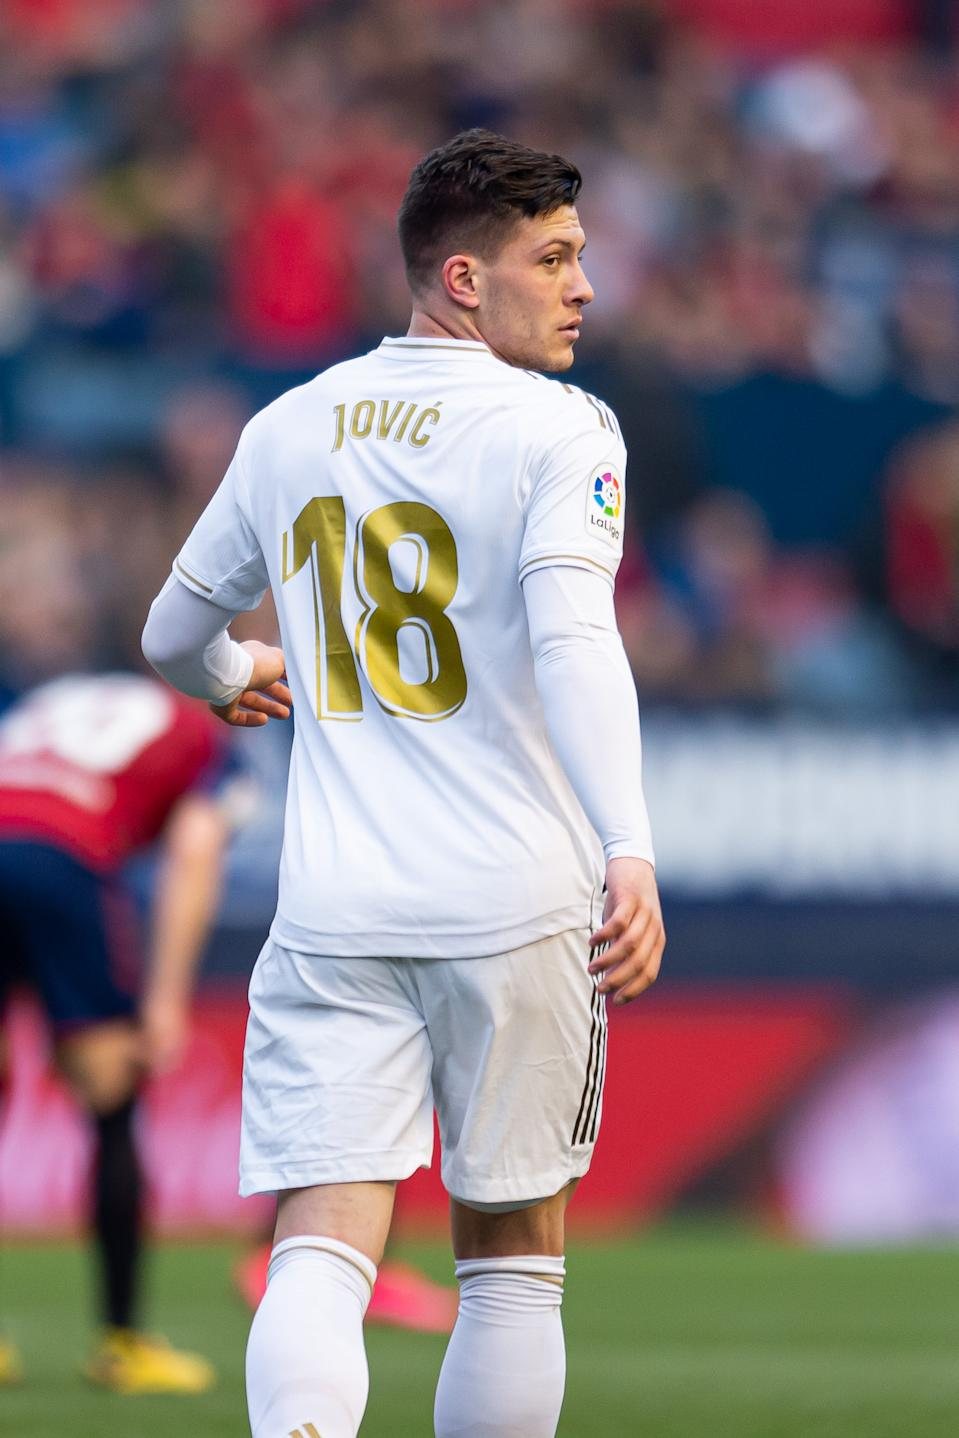 PAMPLONA, SPAIN - FEBRUARY 09: (BILD ZEITUNG OUT) Luka Jovic of Real Madrid looks on during the Liga match between CA Osasuna and Real Madrid CF at El Sadar Stadium on February 09, 2020 in Pamplona, Spain. (Photo by Alejandro/DeFodi Images via Getty Images)